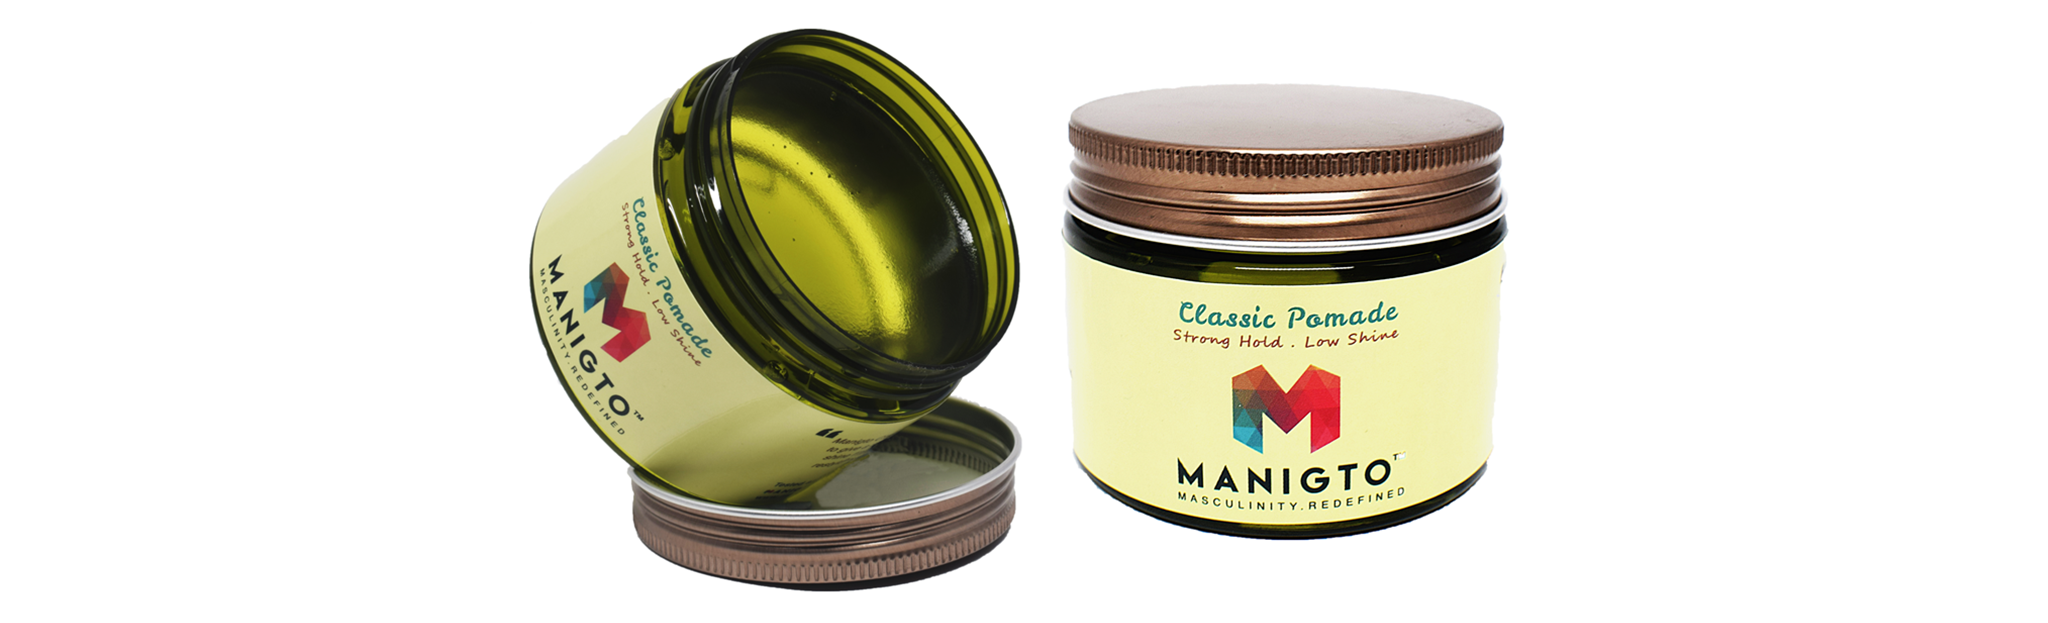 MANIGTO Classic Pomade 150ml /5.3oz, HAIR GROOMING - MANIGTO